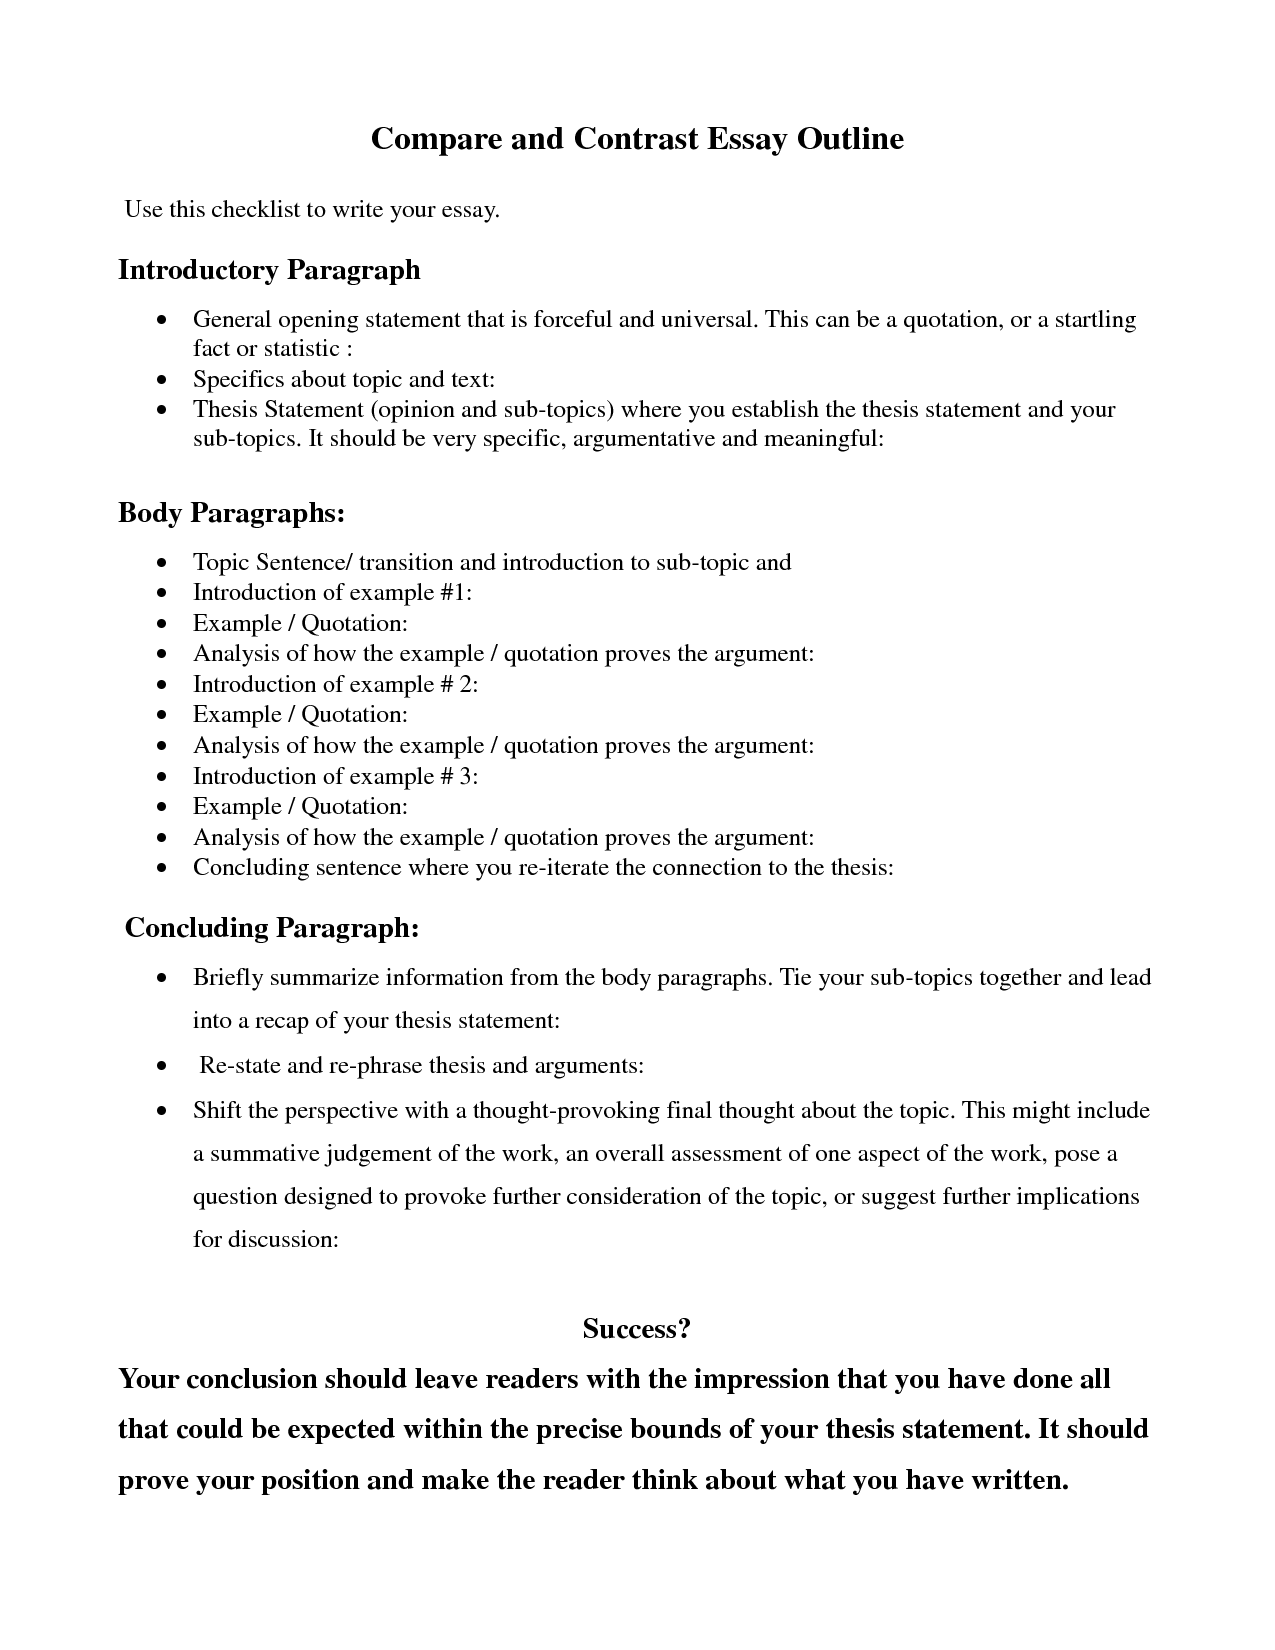 Comparecontrast Essay Outline  Google Search  Education  Thesis  Comparecontrast Essay Outline  Google Search Business Studies Essays also Thesis Statement For Process Essay  Business Law Essay Questions